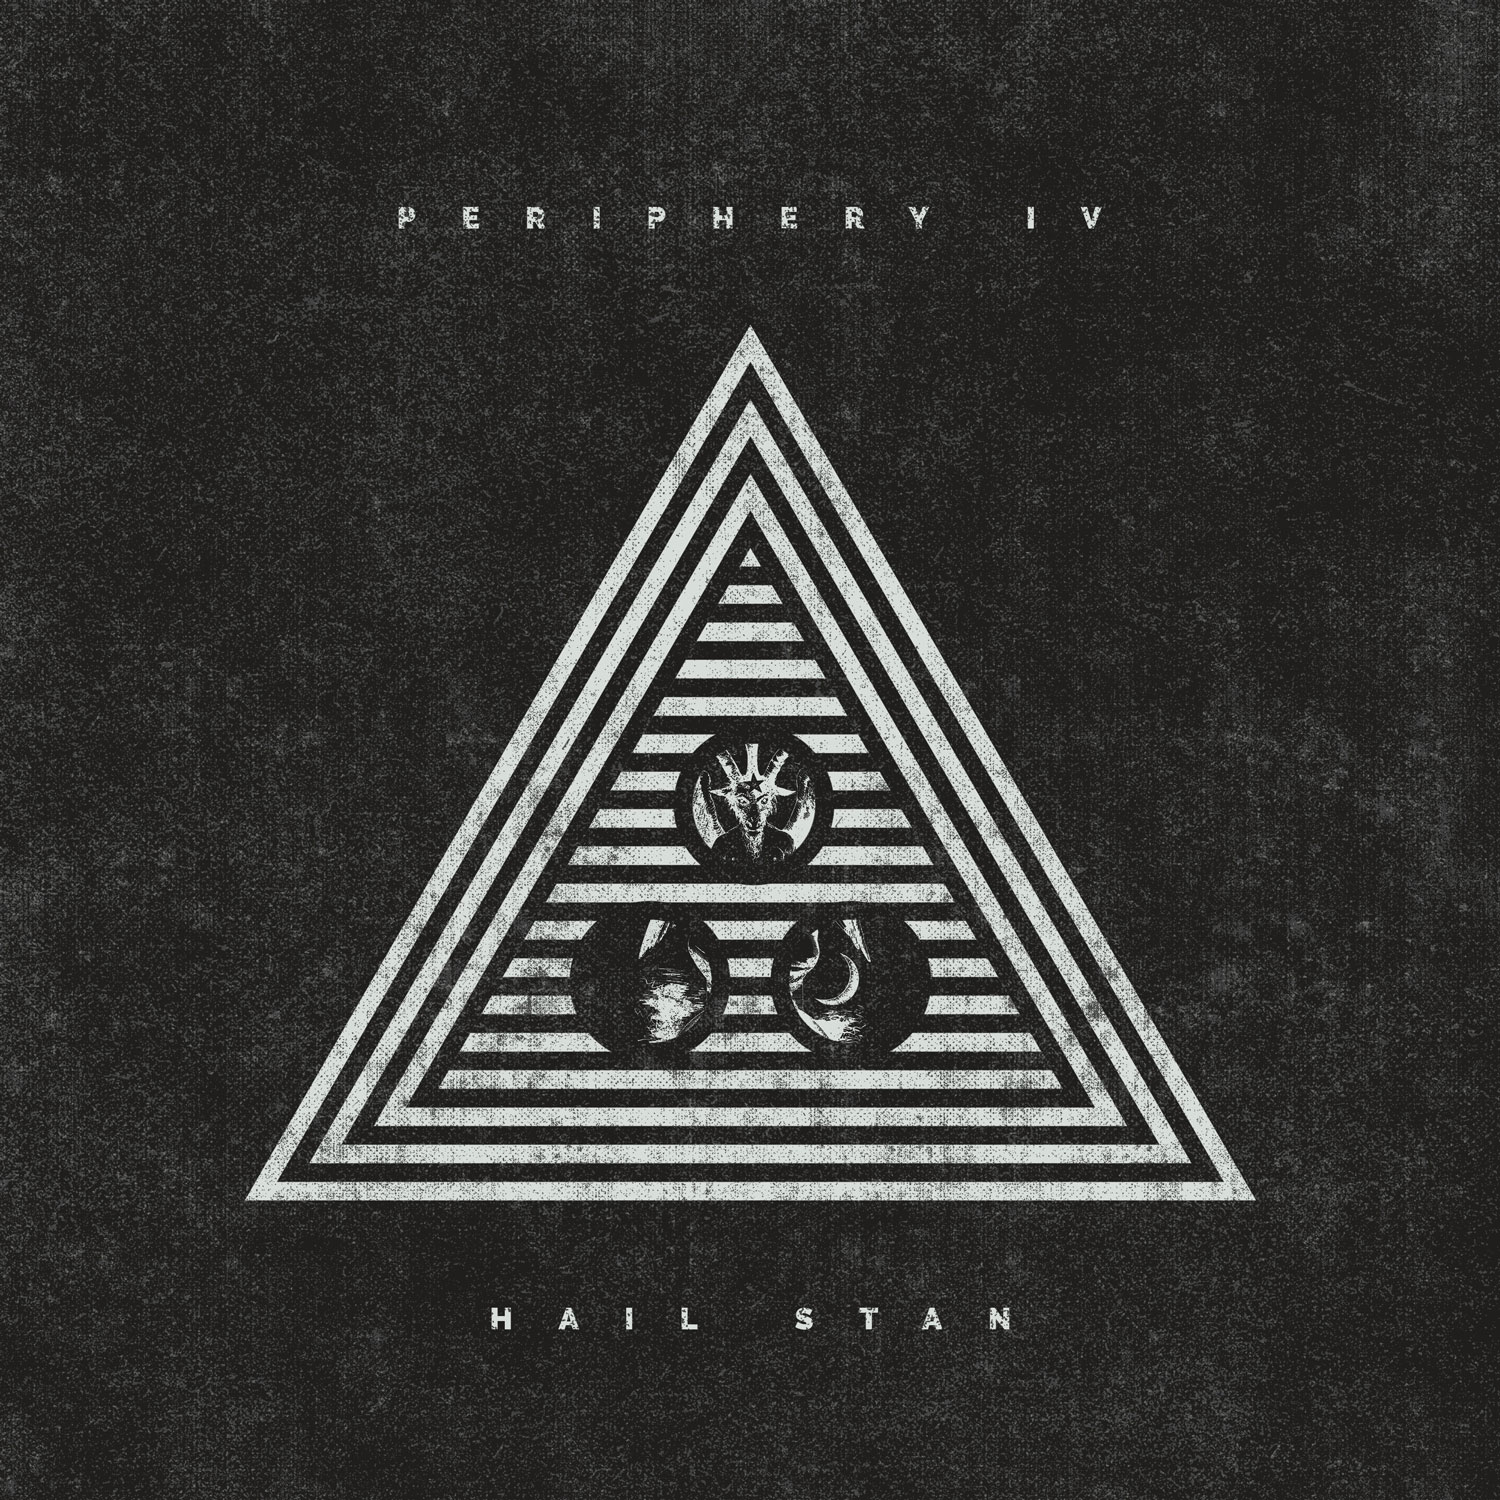 periphery-hailstan-cover-small.jpg